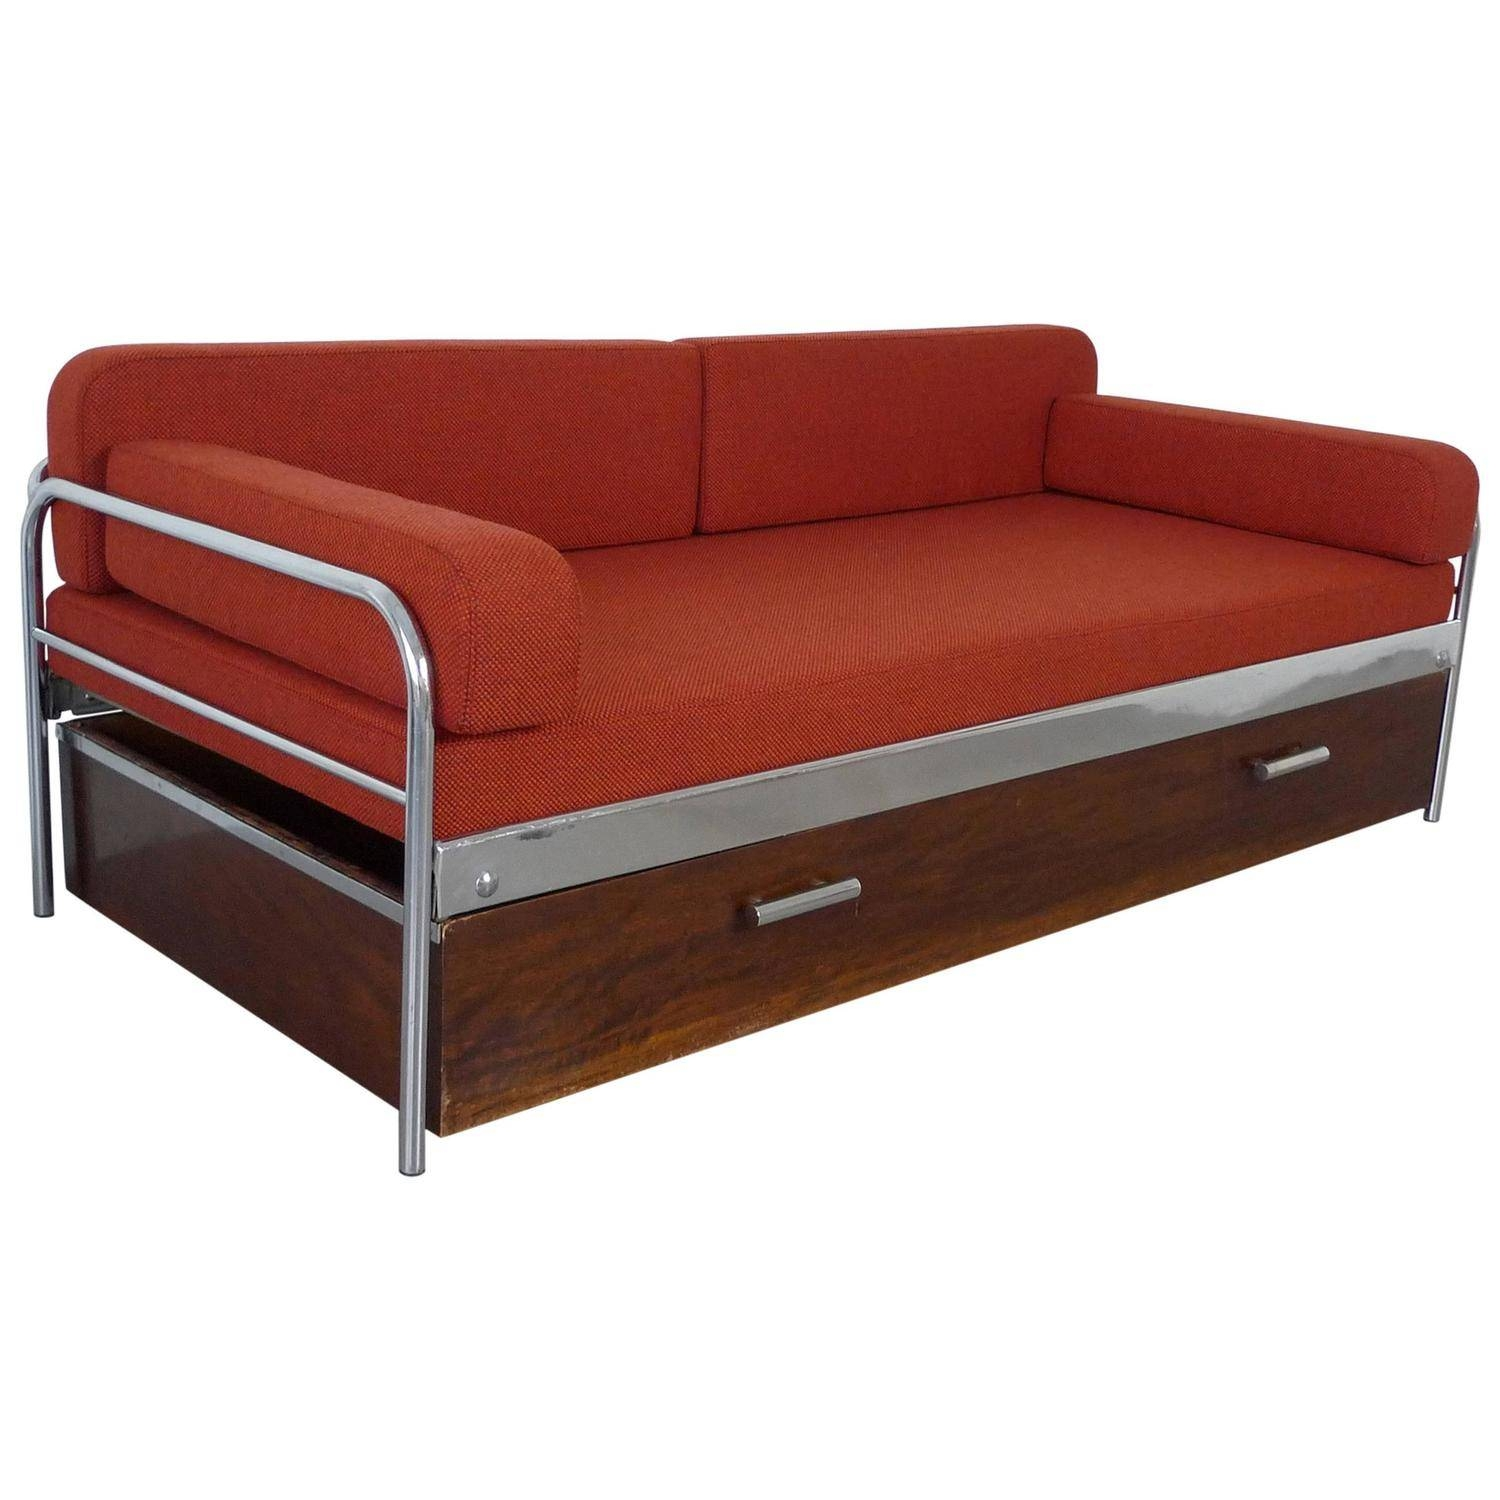 1930S Bauhaus Steel Tube Sofa Bedmücke And Melder intended for 1930S Couch (Image 1 of 30)